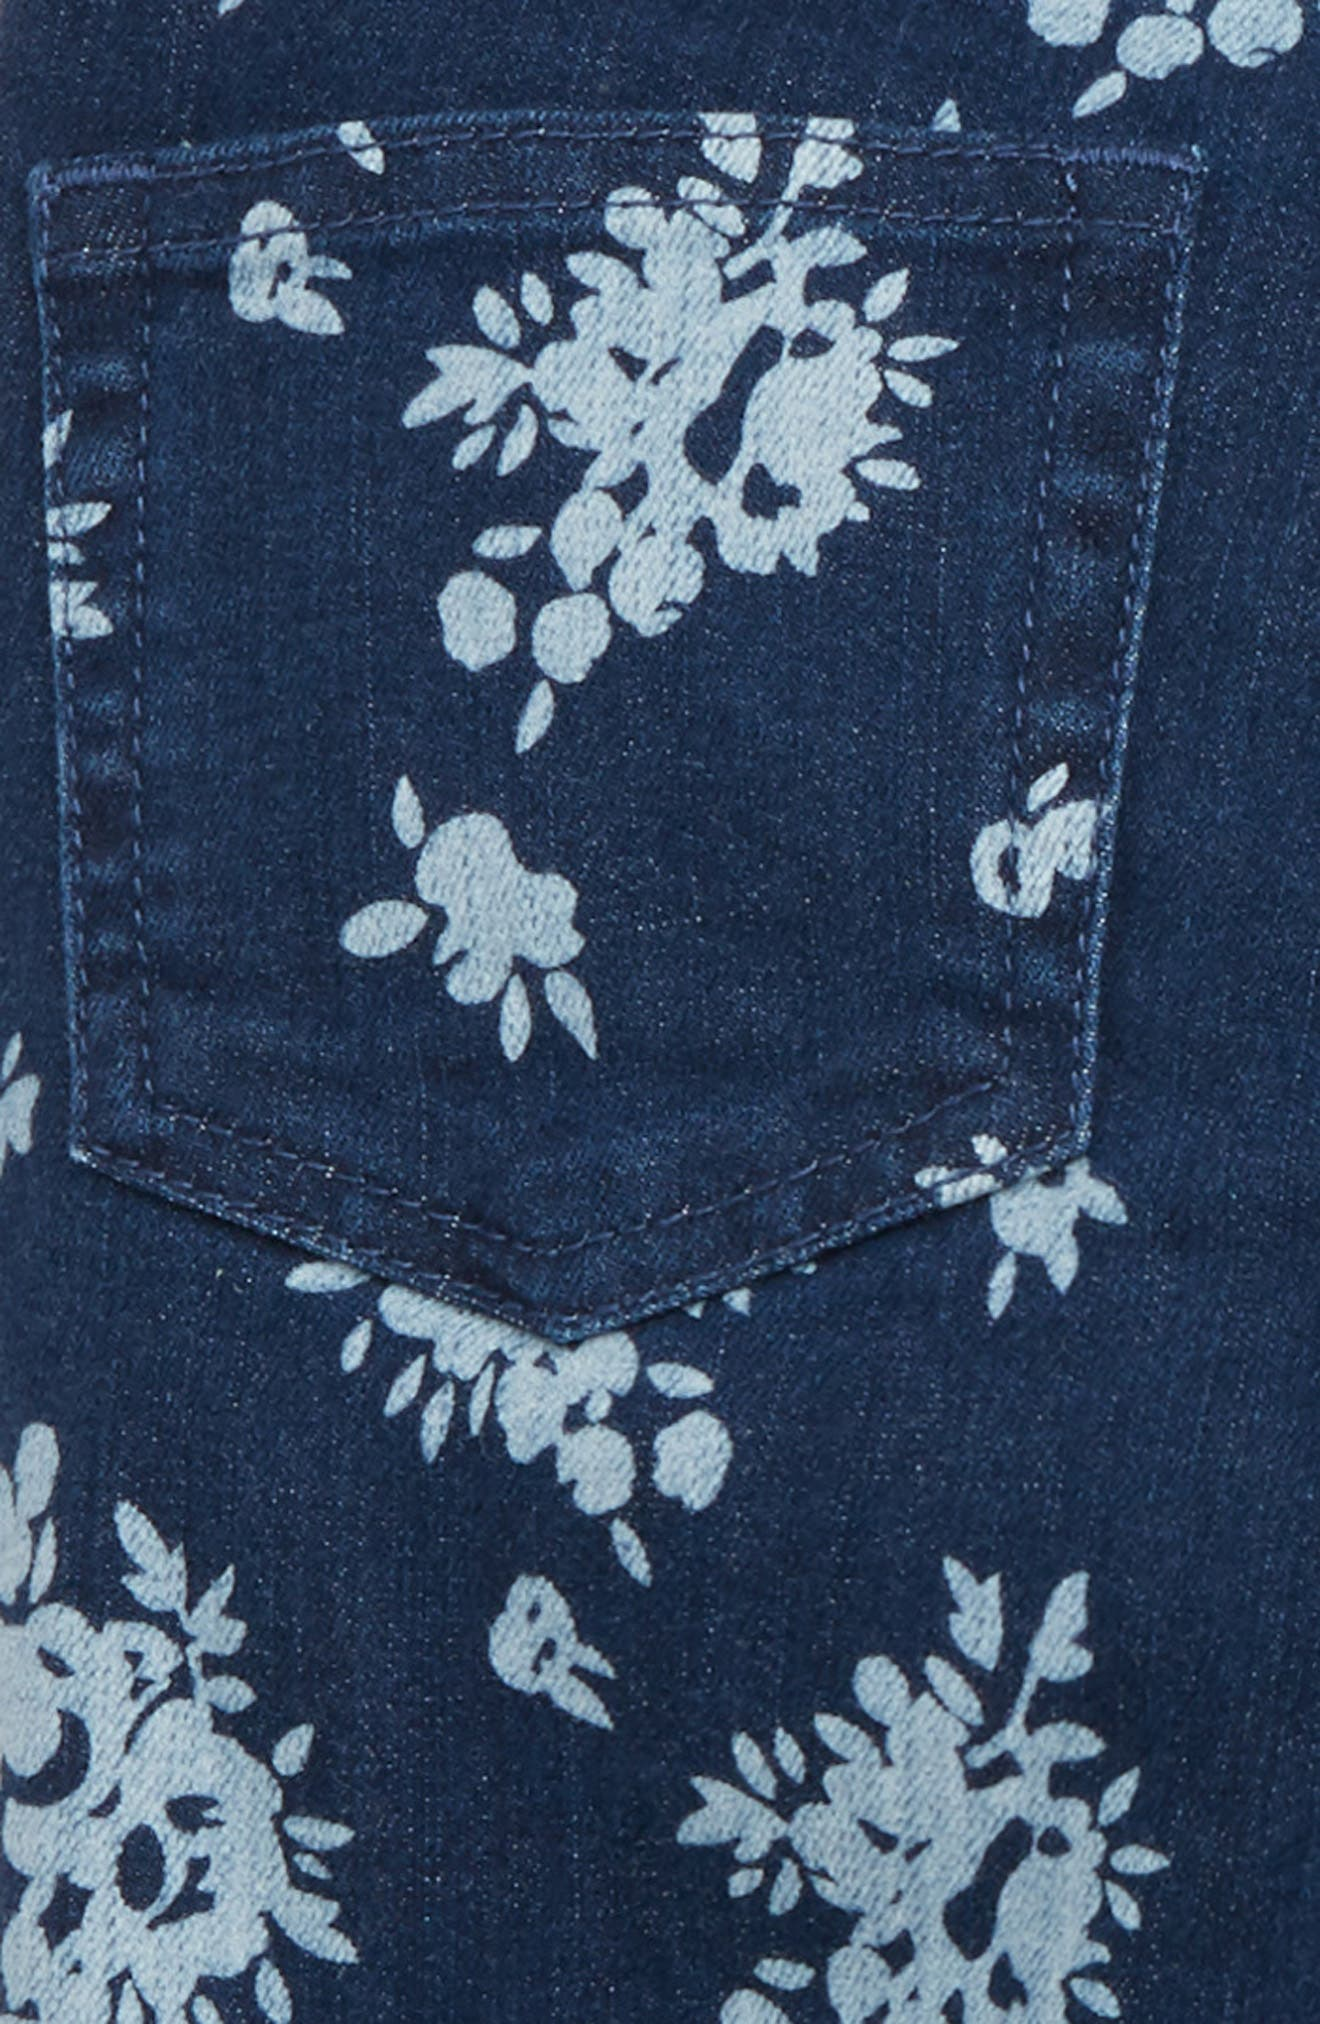 Flower Print Stretch Toothpick Jeans,                             Alternate thumbnail 3, color,                             PORTLAND WASH